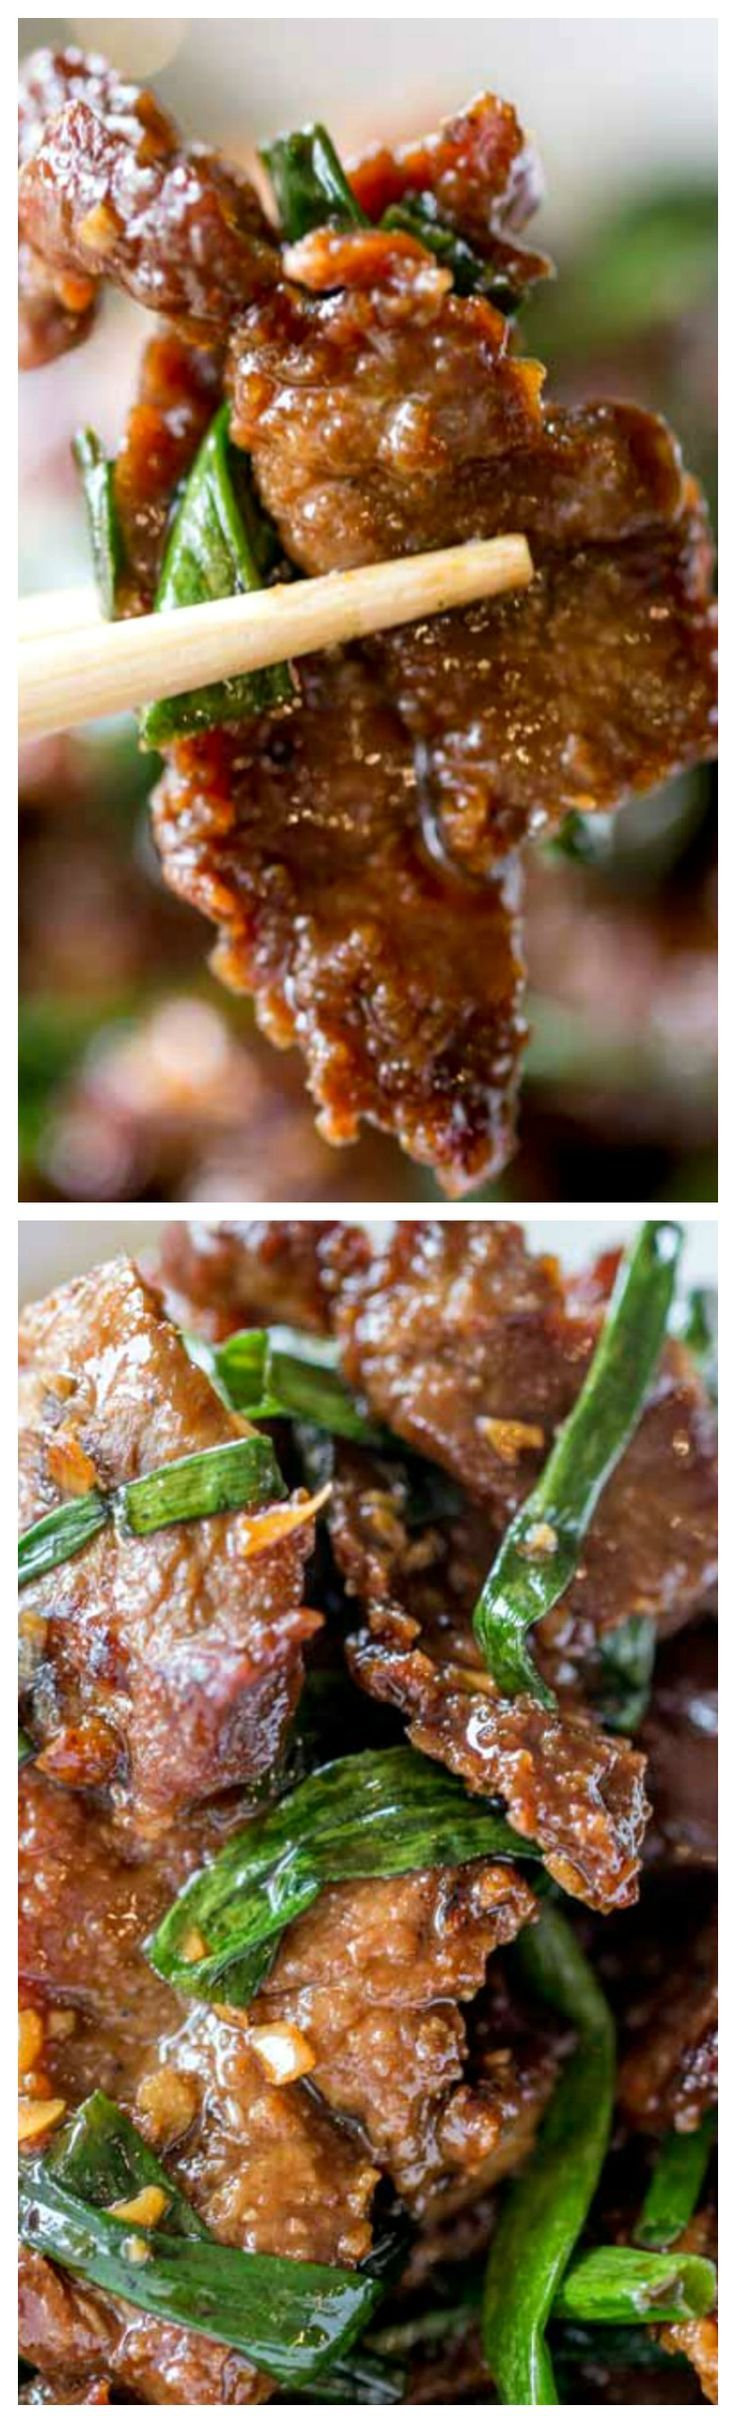 Mongolian Beef ~ Easy to make in just 30 minutes, crispy, sweet and full of garlic and ginger flavors you love from your favorite Chinese restaurant.